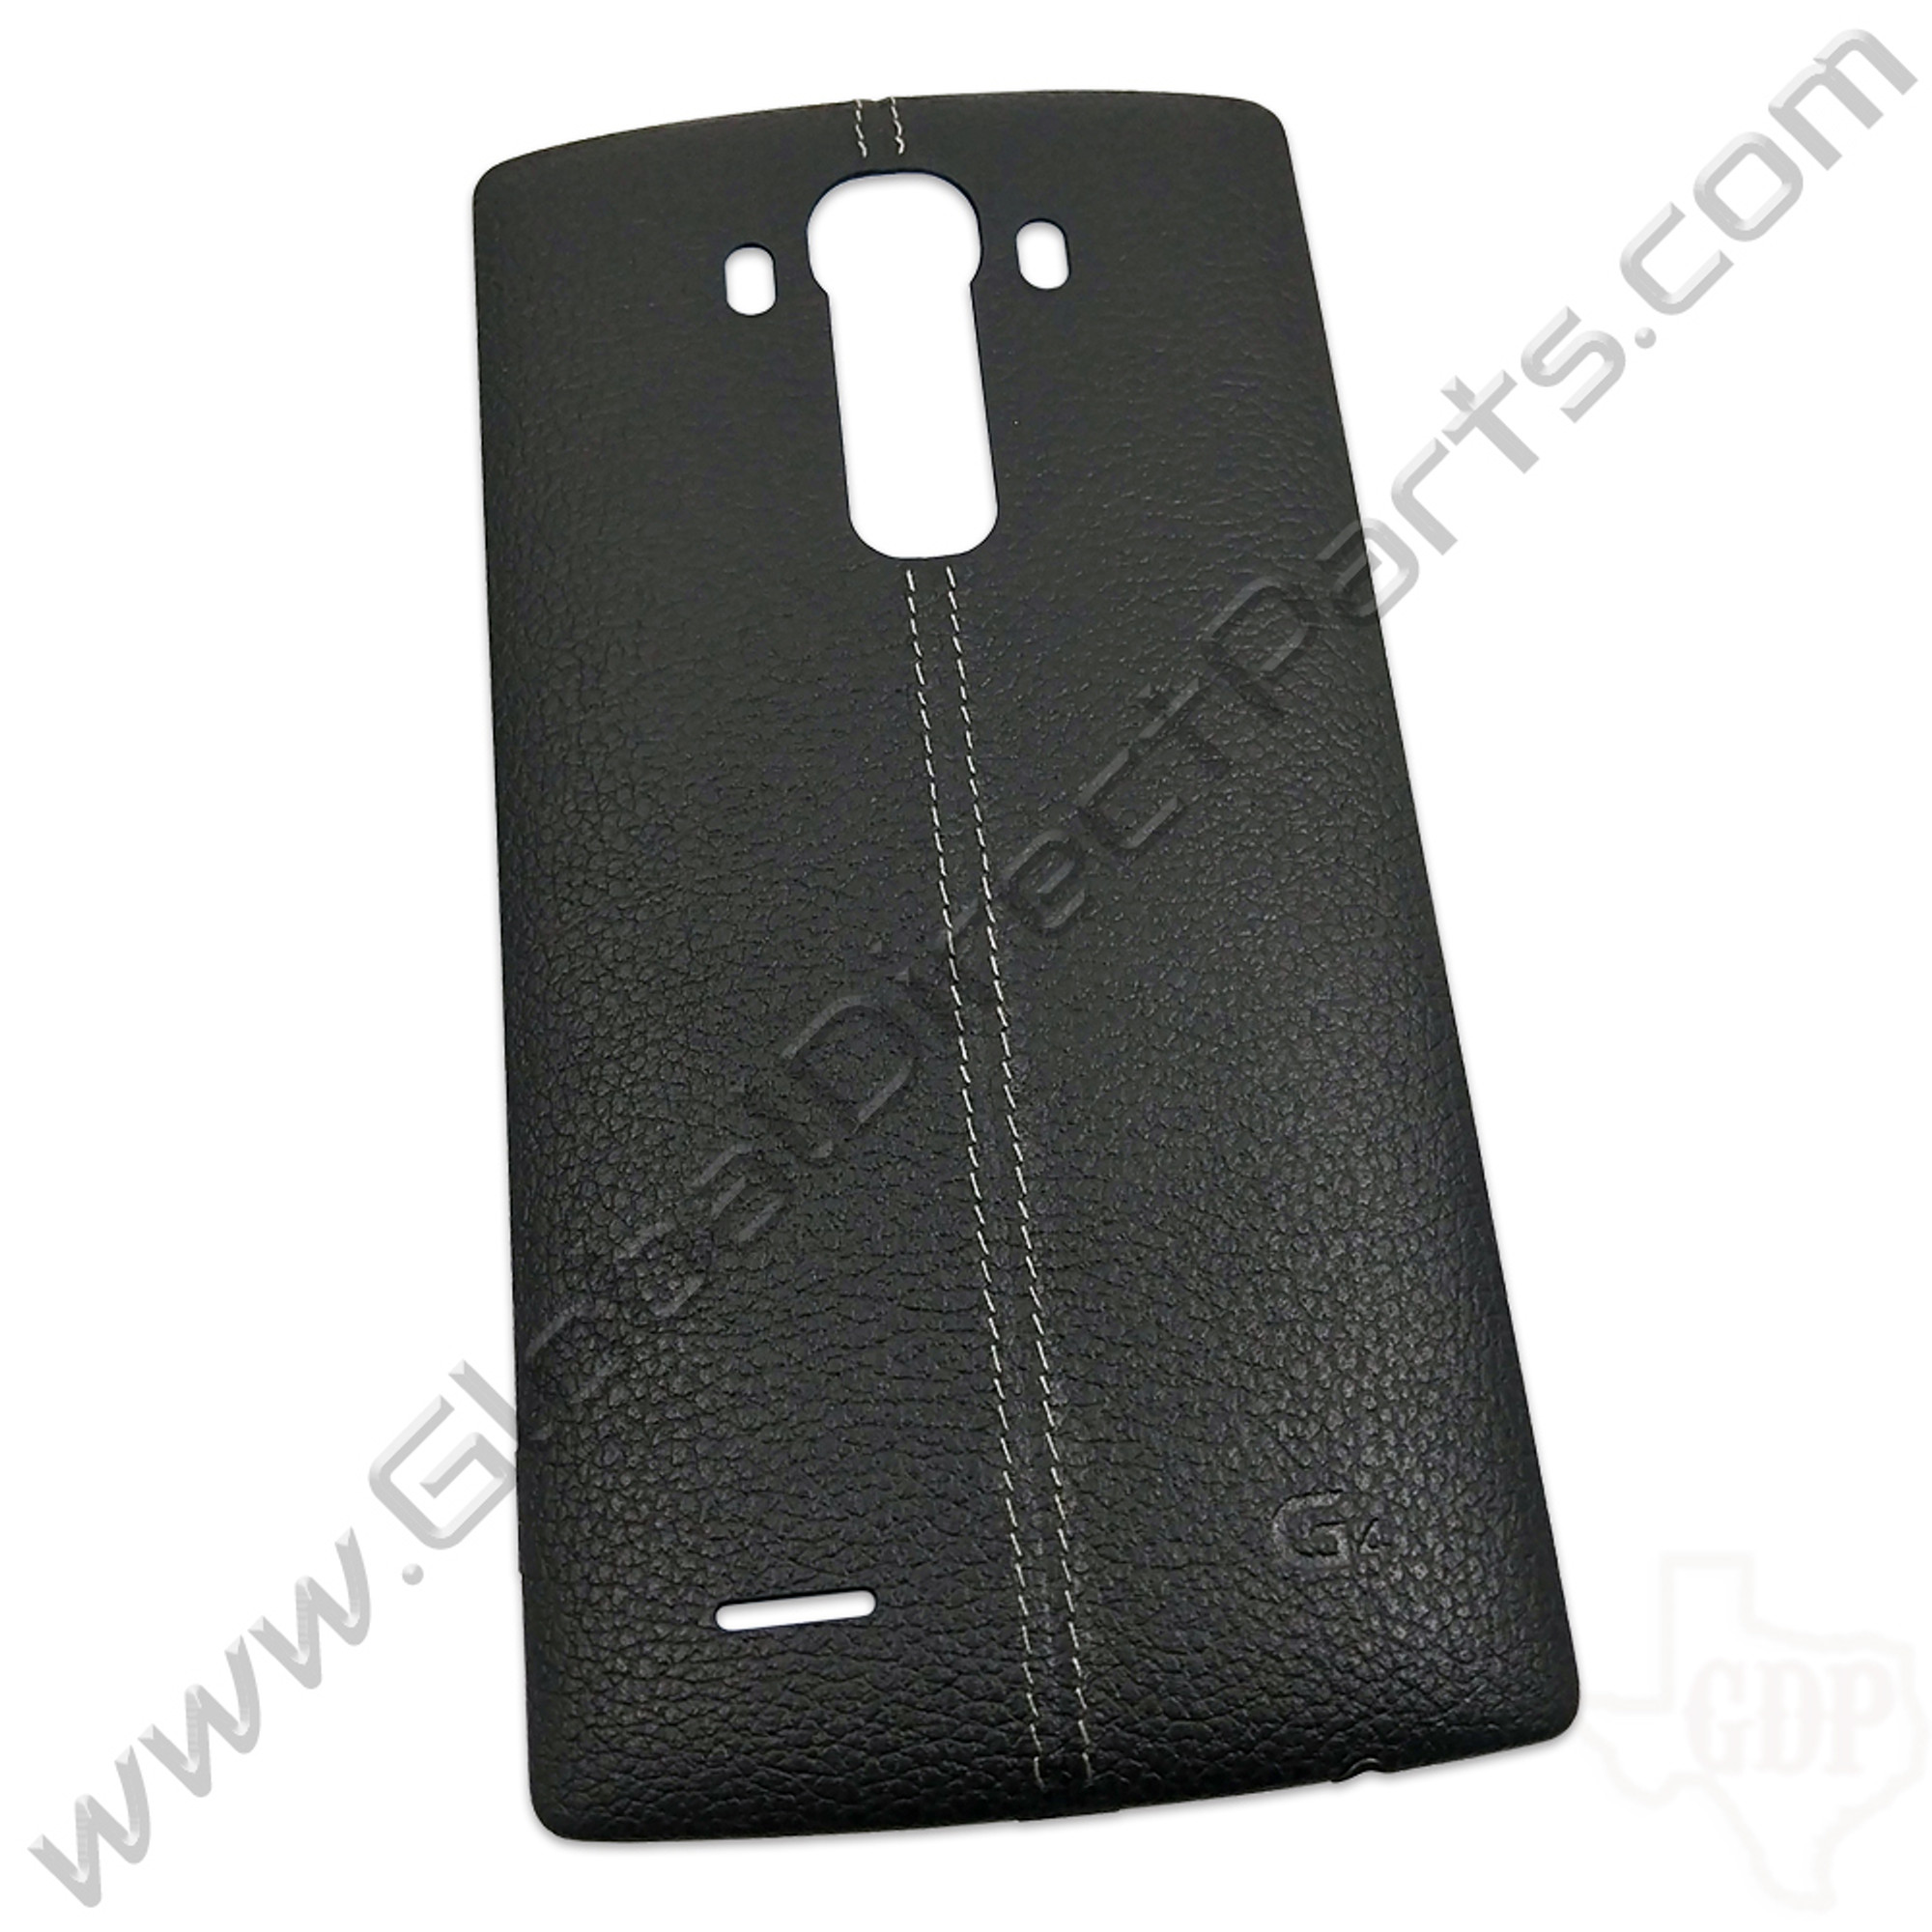 sneakers for cheap 77ec4 7469c OEM LG G4 H811, H815, LS991, US991 Battery Cover - Black [Leather]